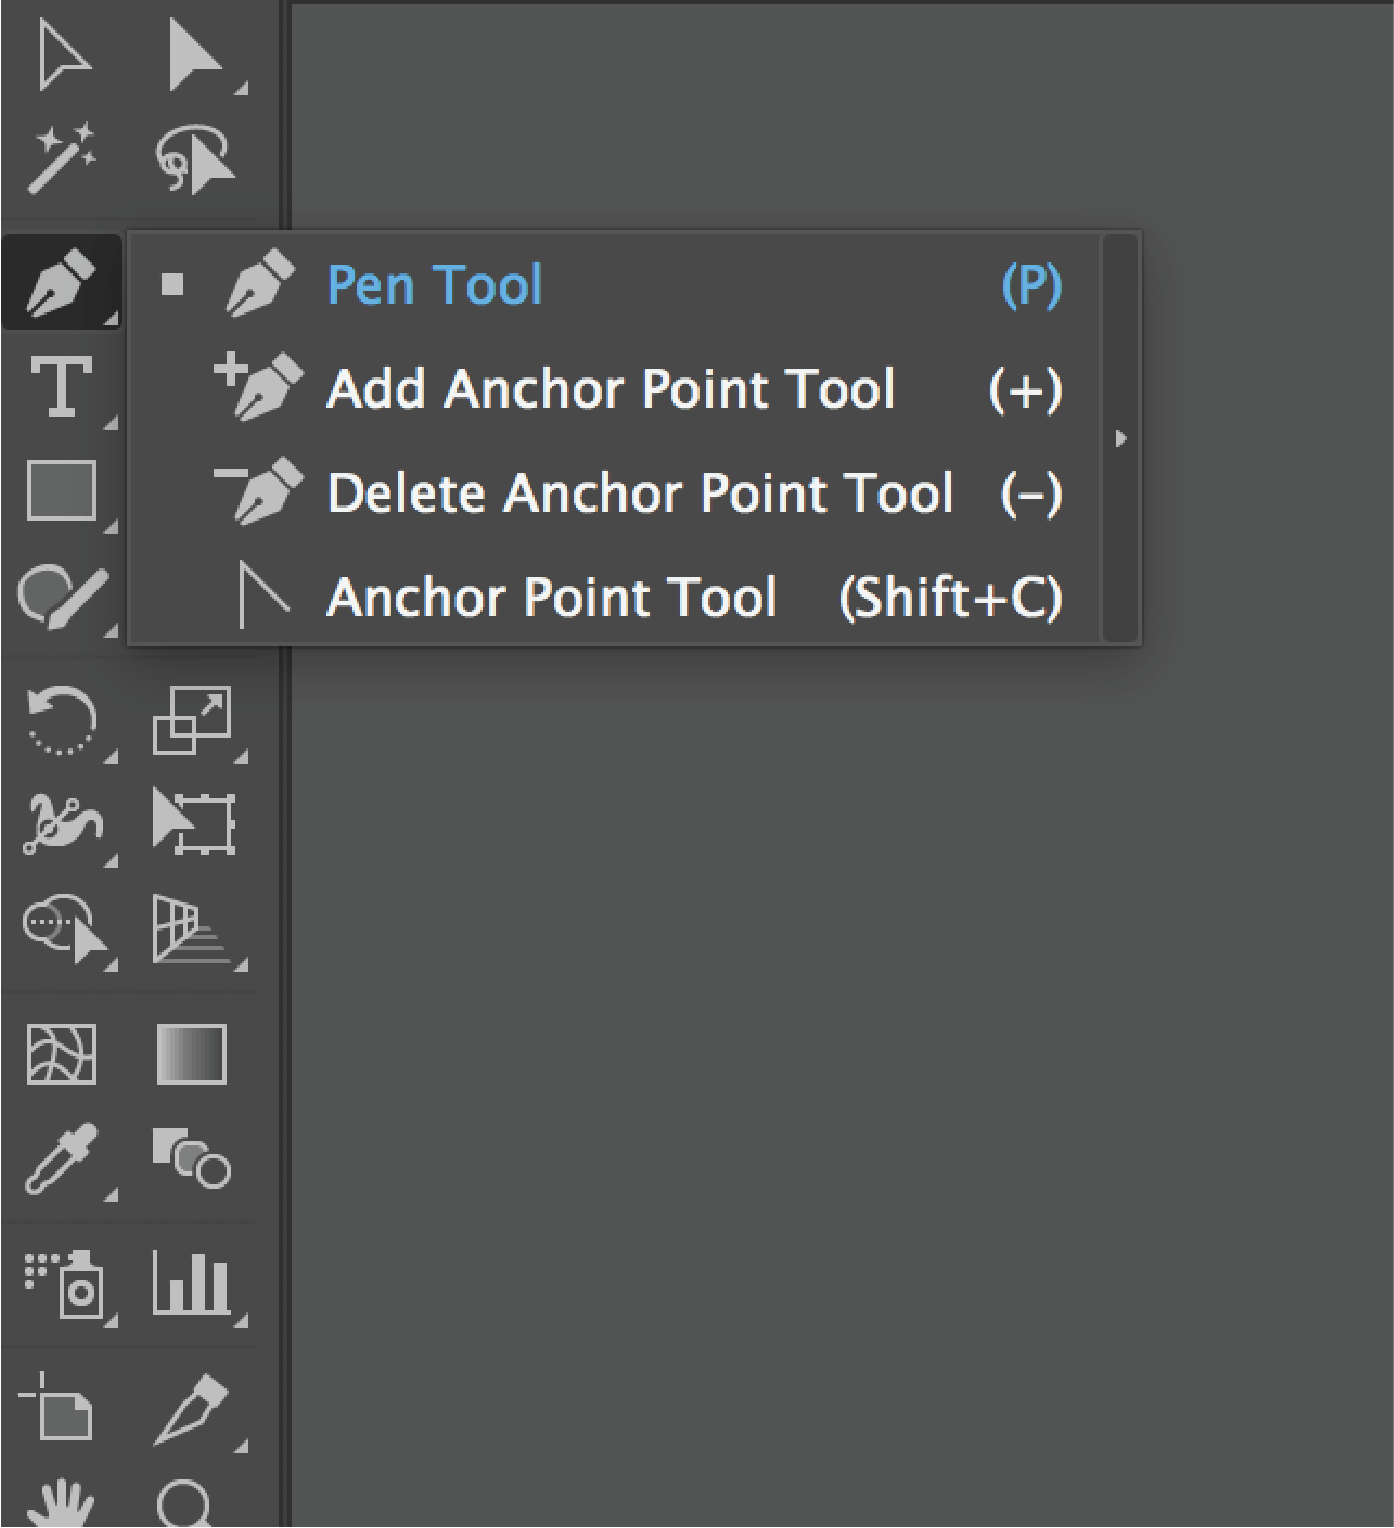 Selecting the pen tool from adobe illustrator